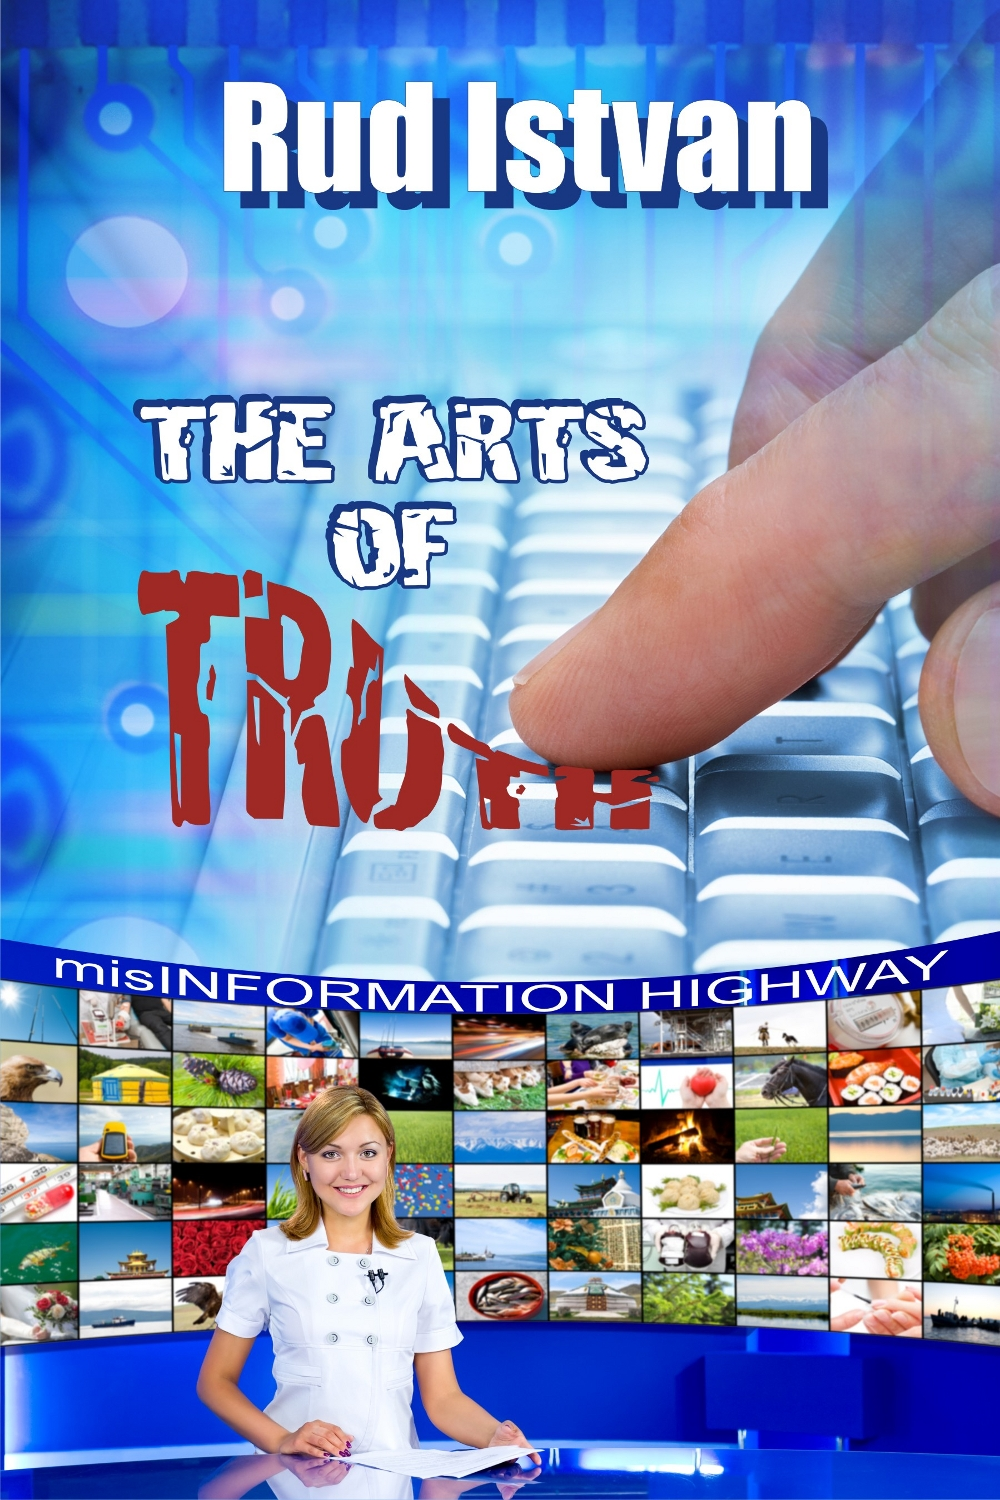 THE ARTS OF TRUTH